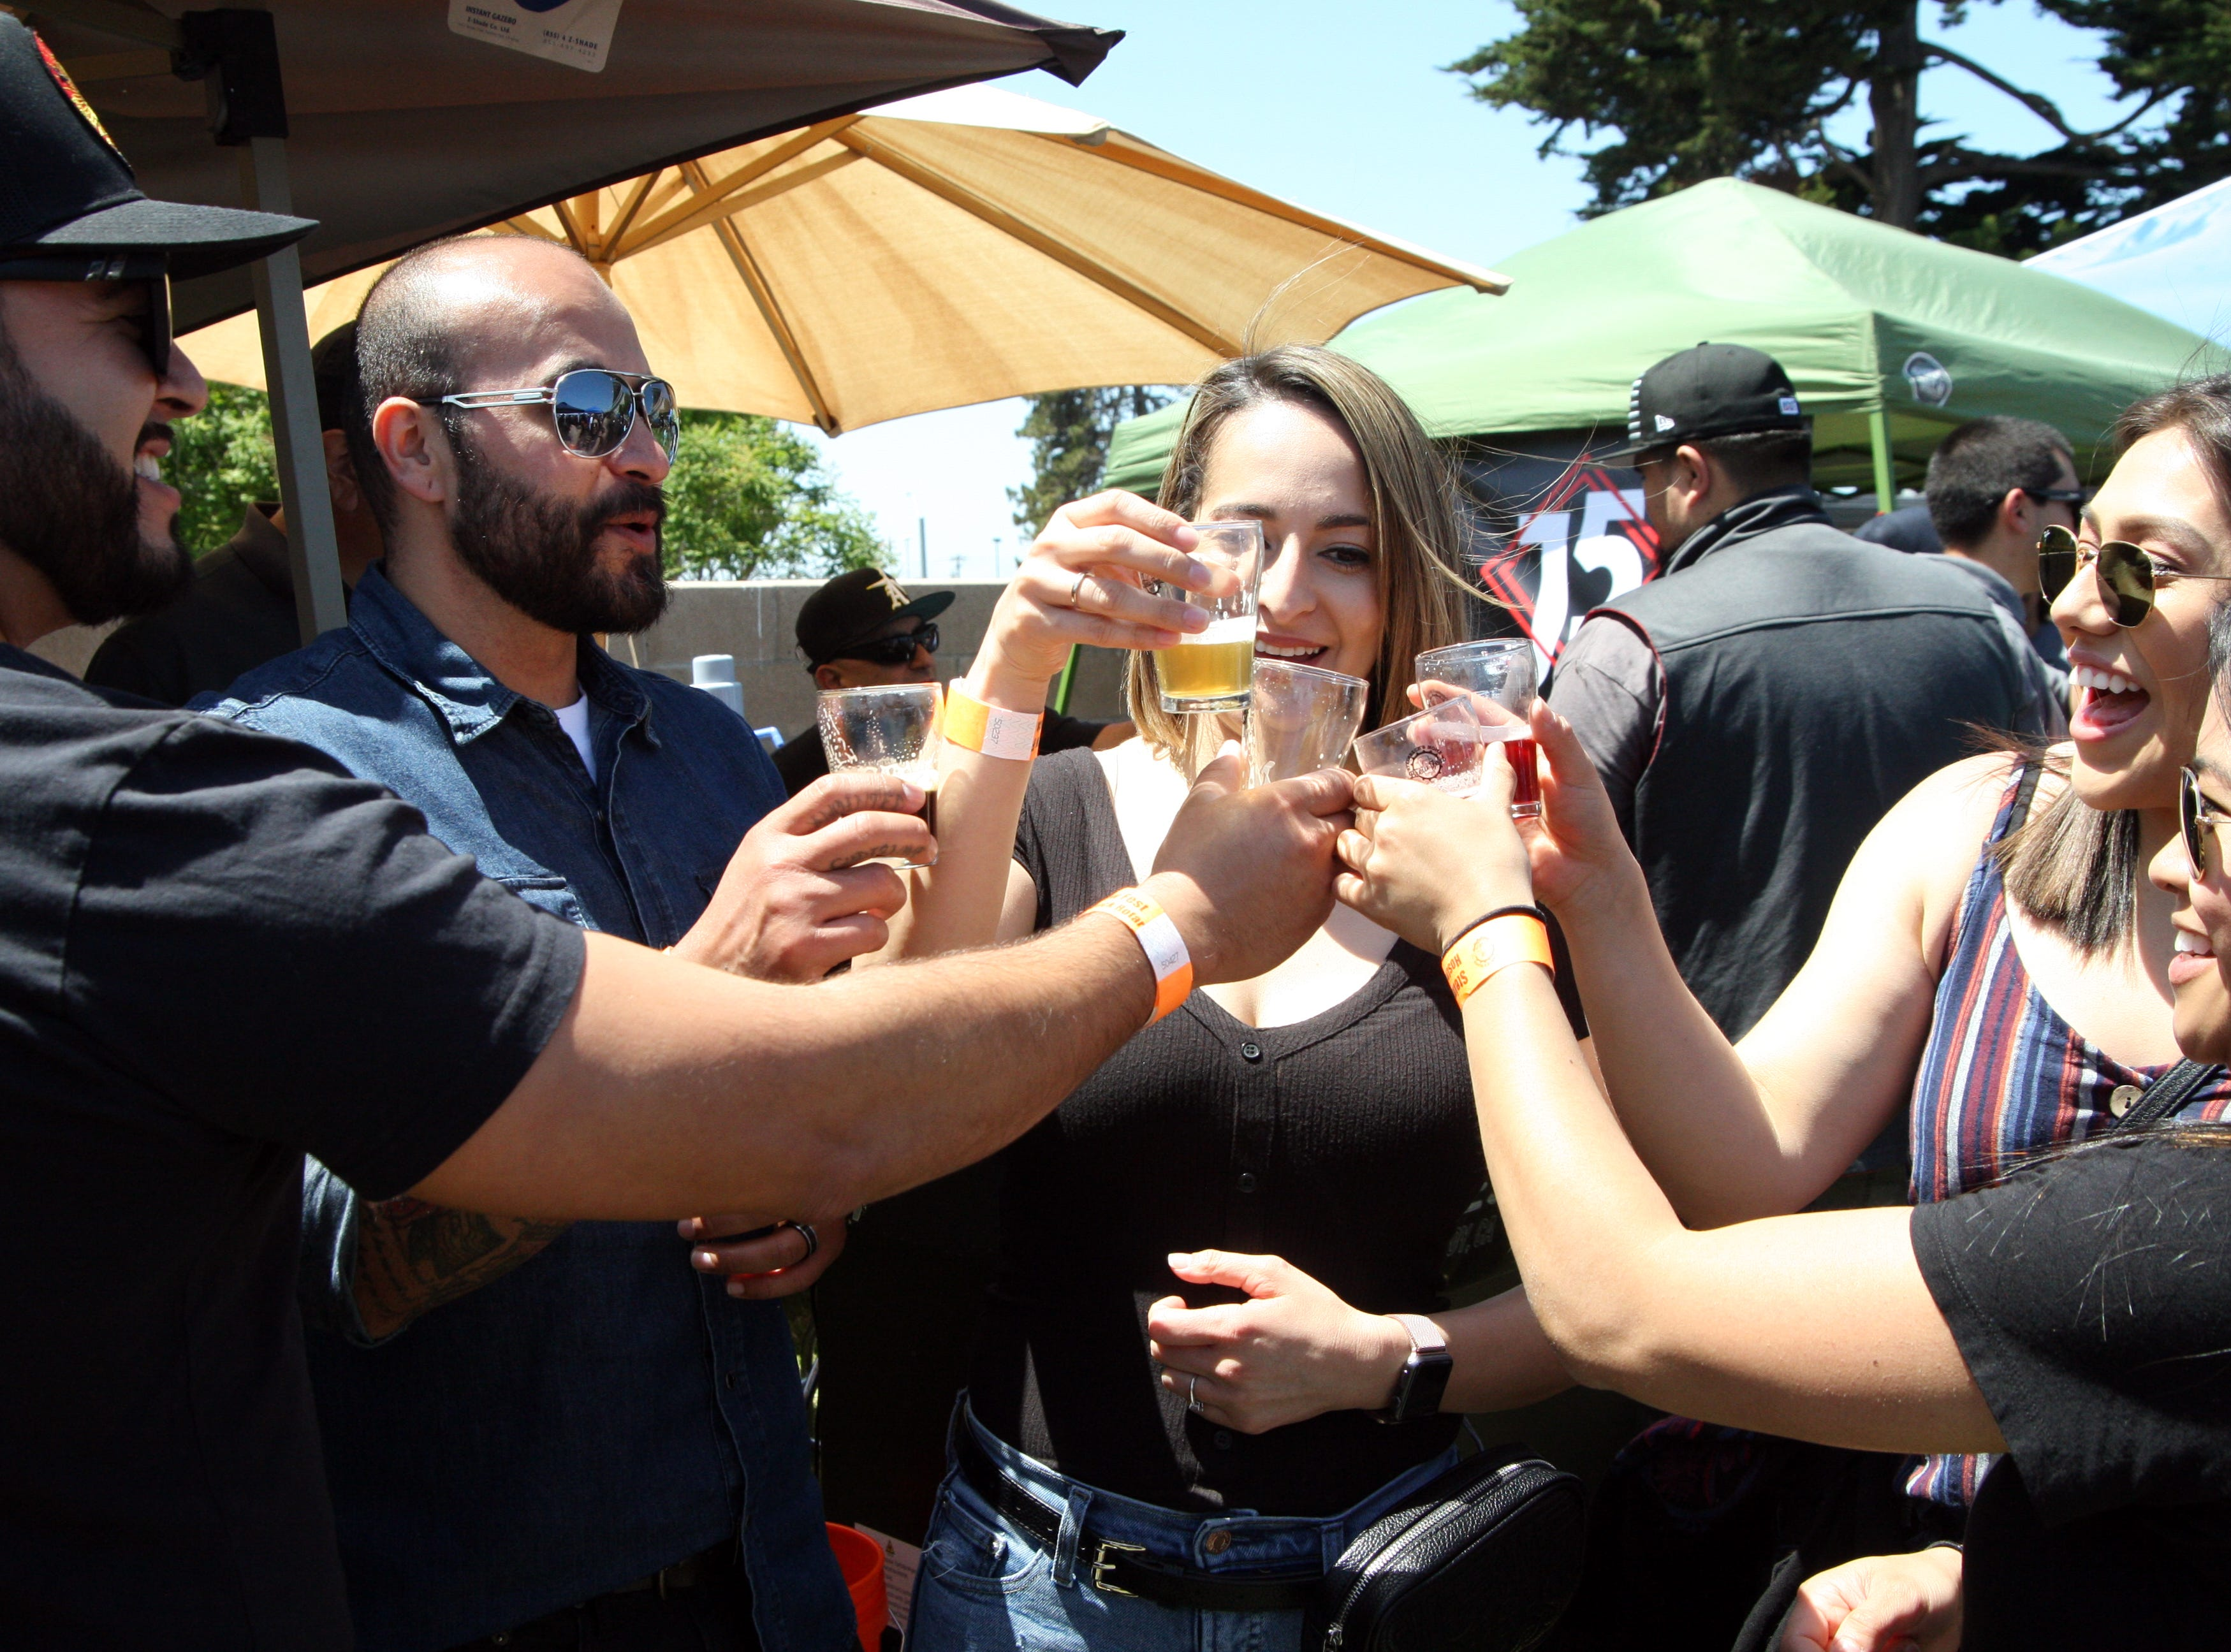 A group of friends or strangers toasts each other at the Brew Fest Saturday. May 4, 2019.